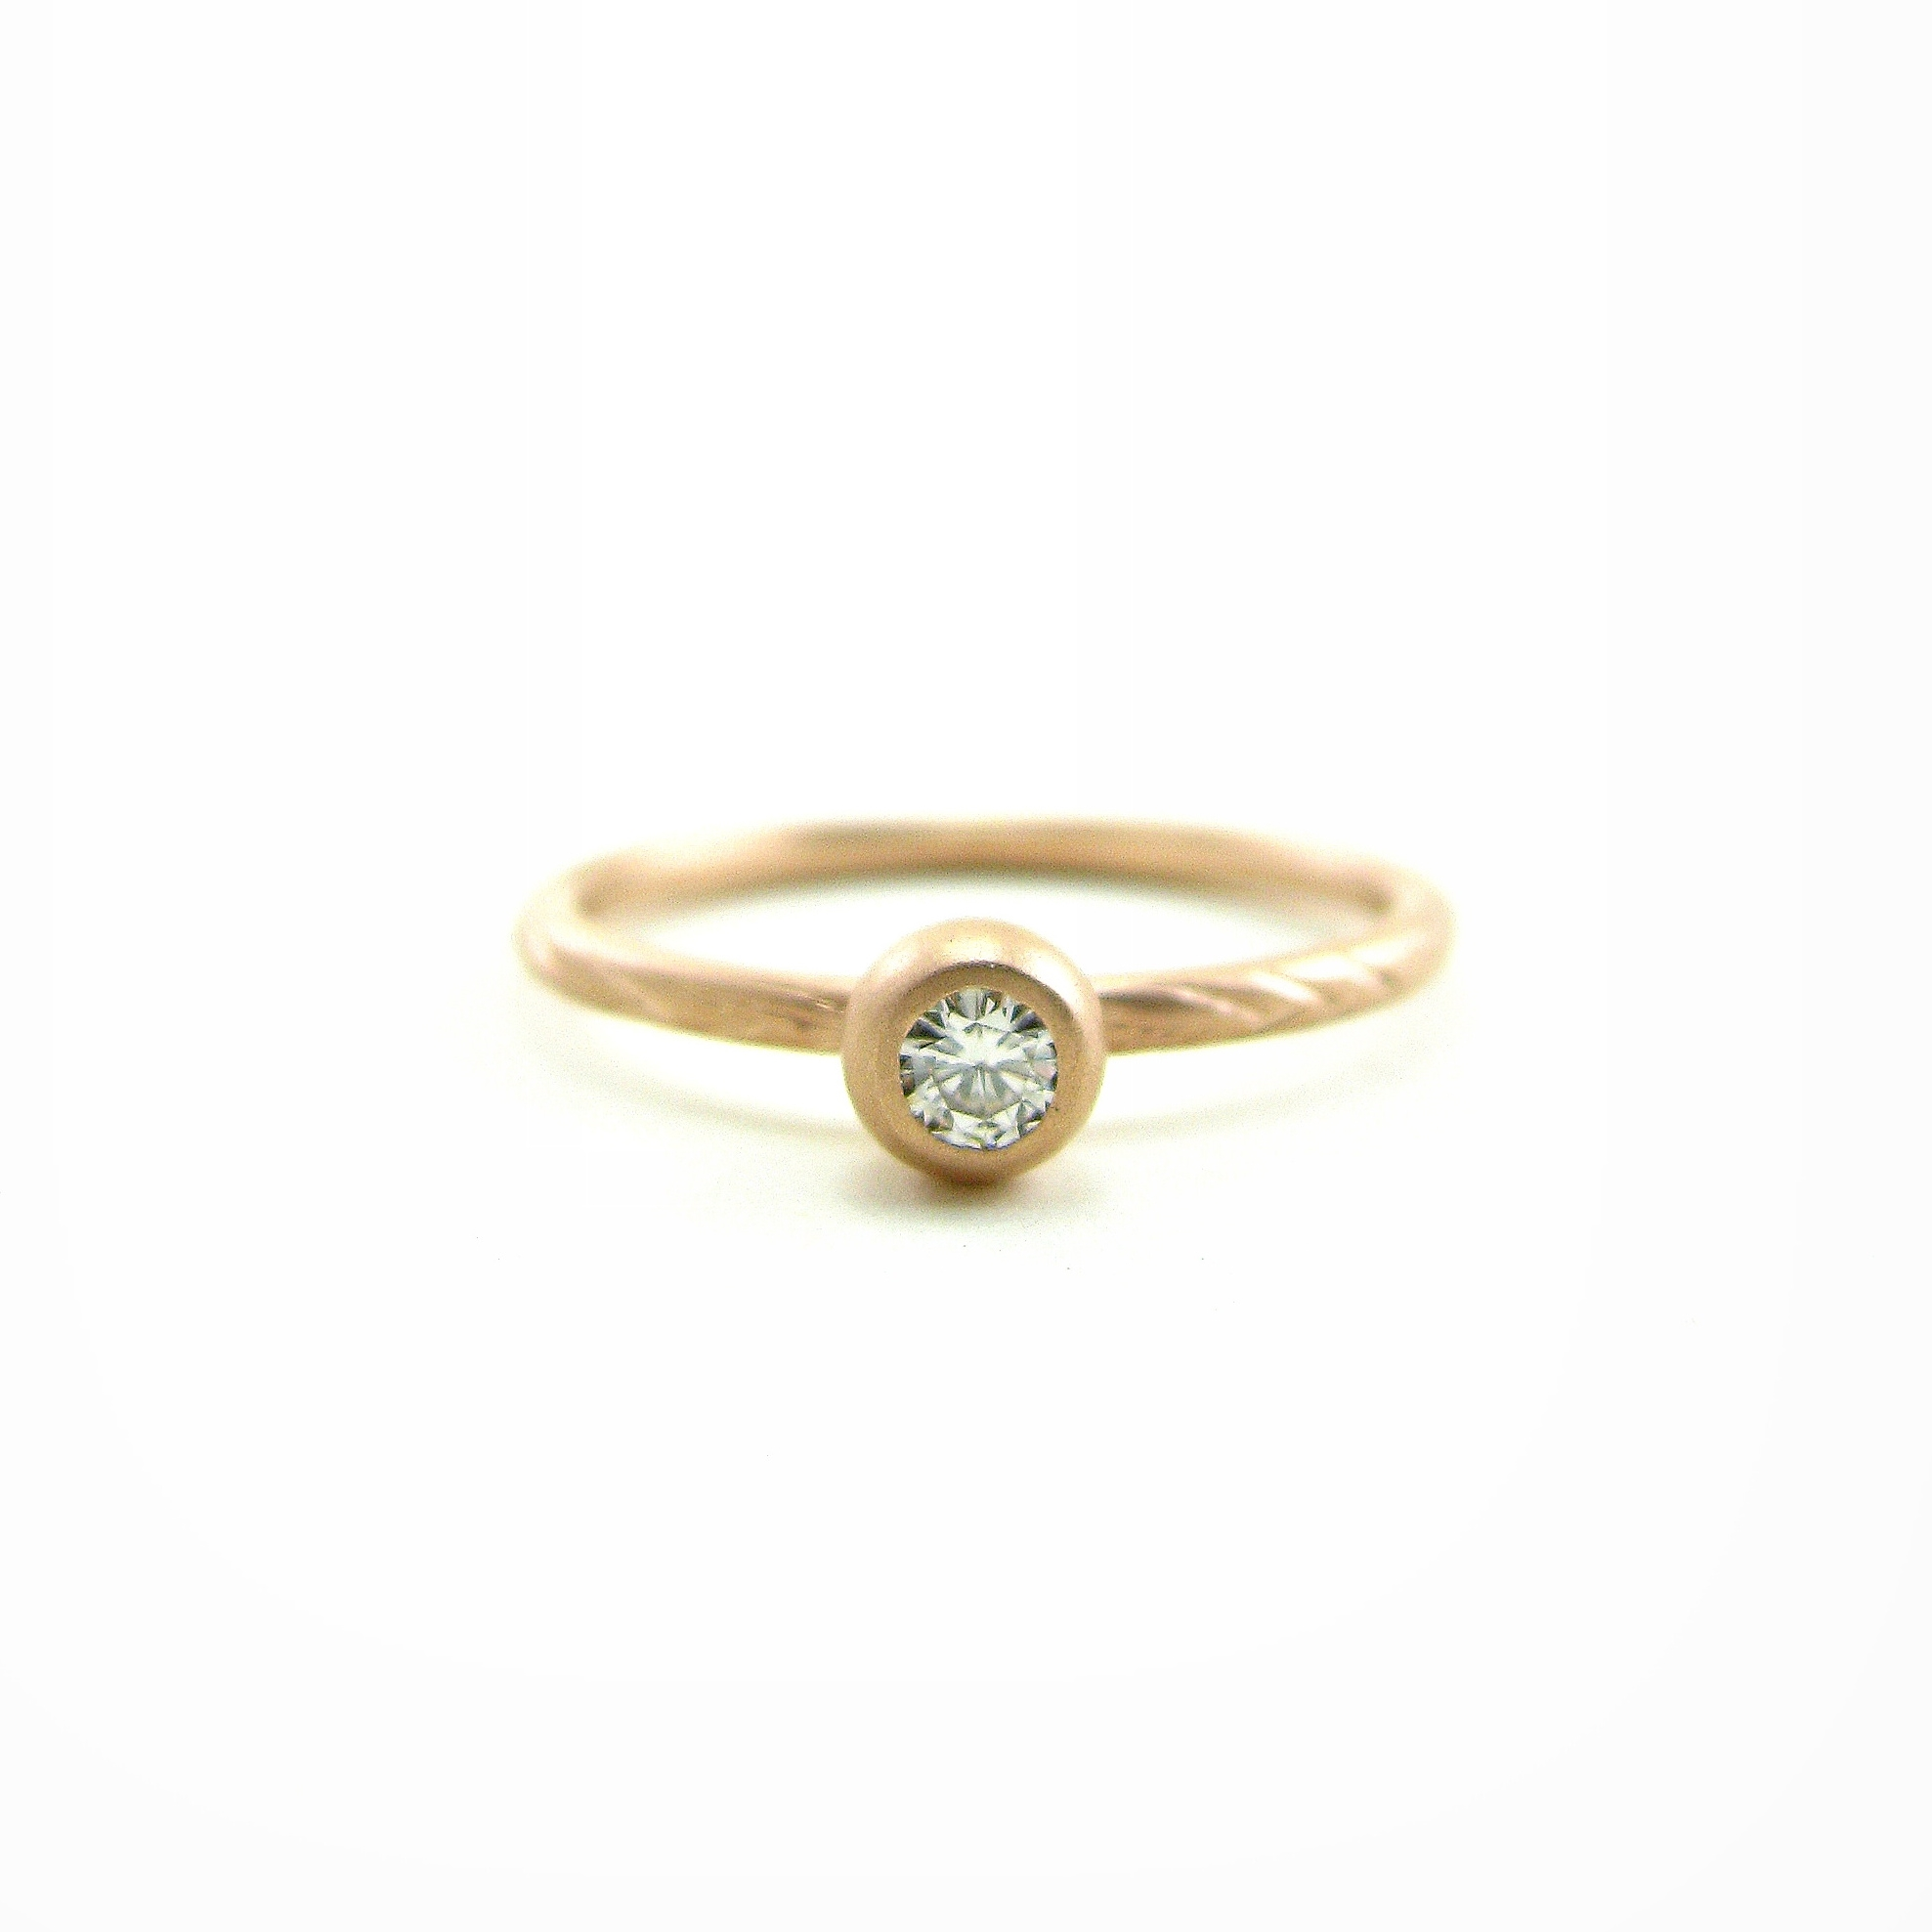 Rose Gold and Recycled Diamond Engagement Ring - $840